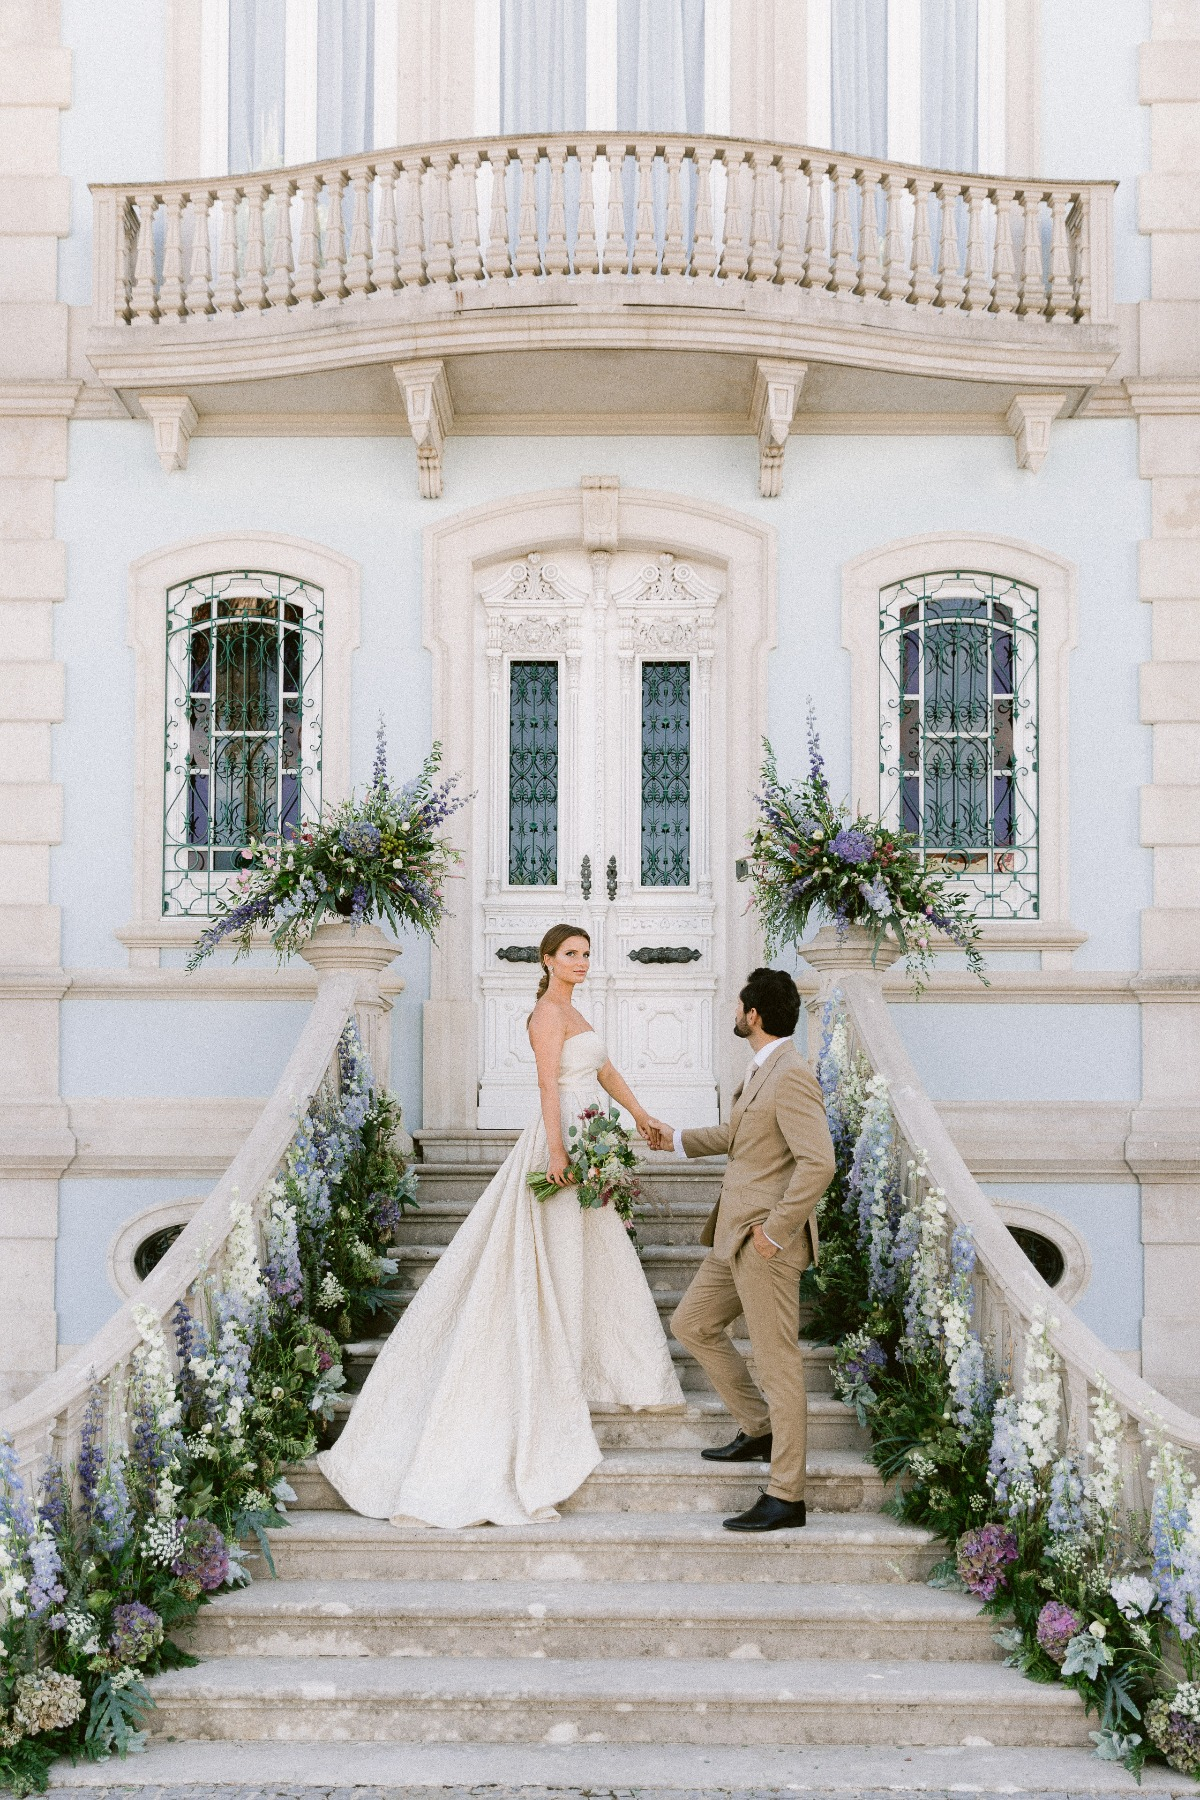 Gio Rodrigues bride and groom fashions